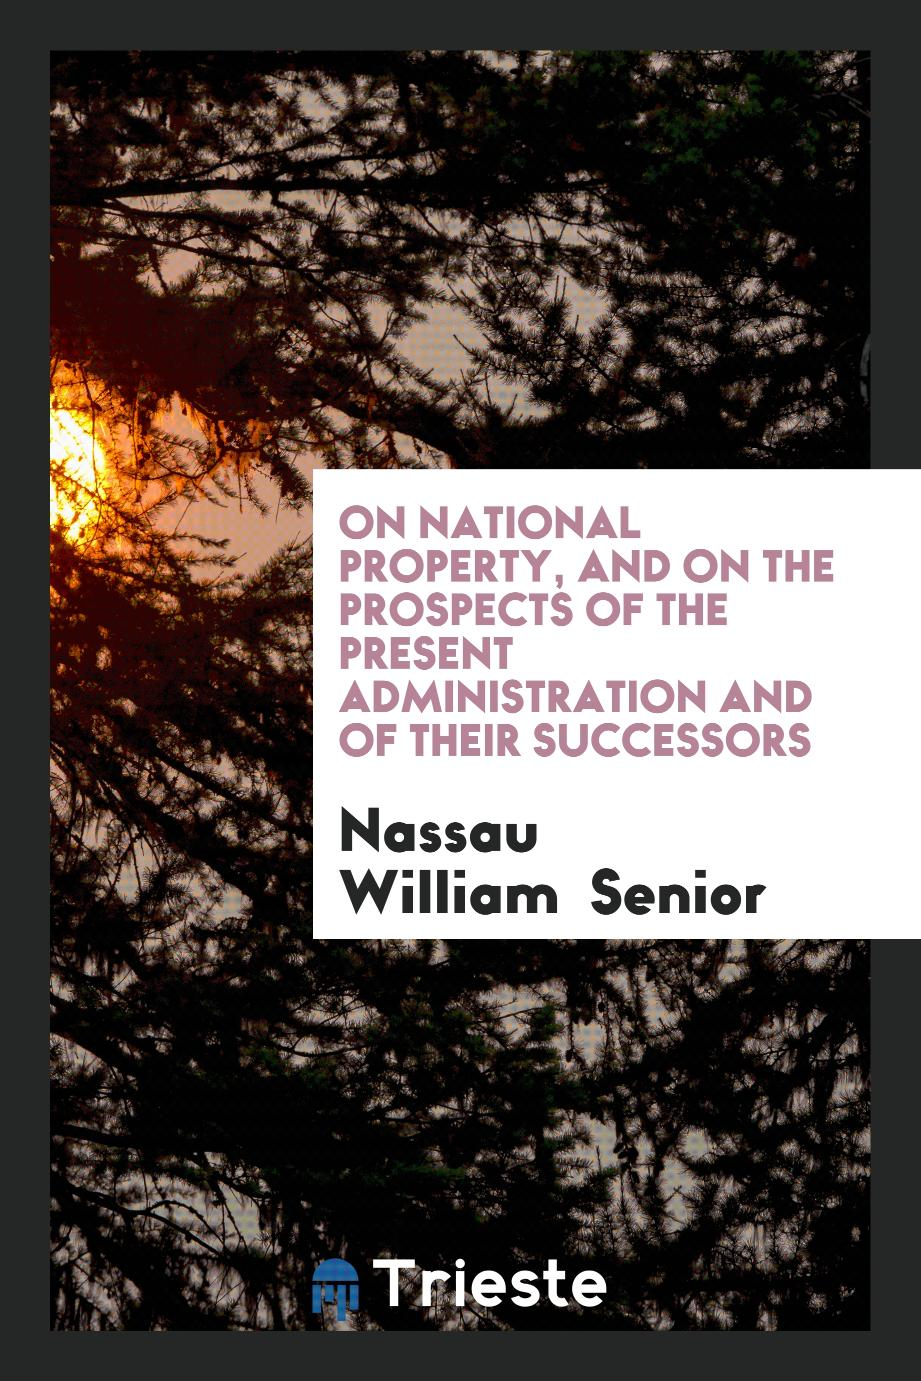 On National Property, and on the Prospects of the Present Administration and of Their Successors